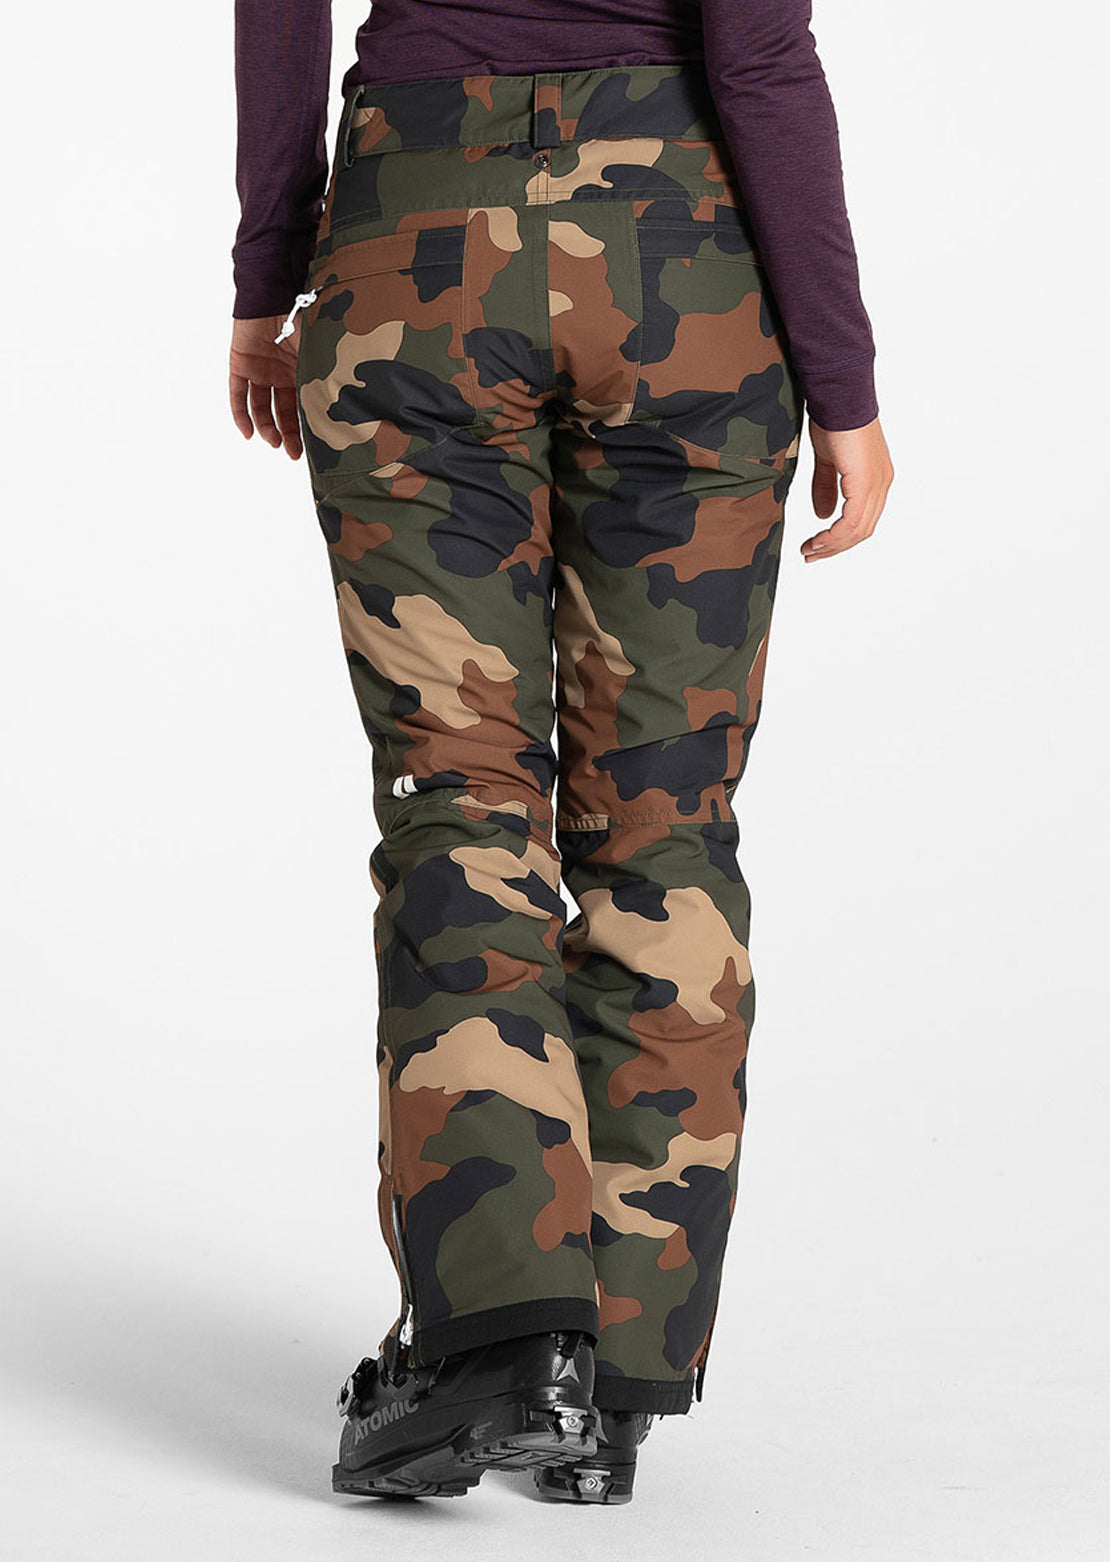 Armada Women's Lenox Insulated Pants Camo